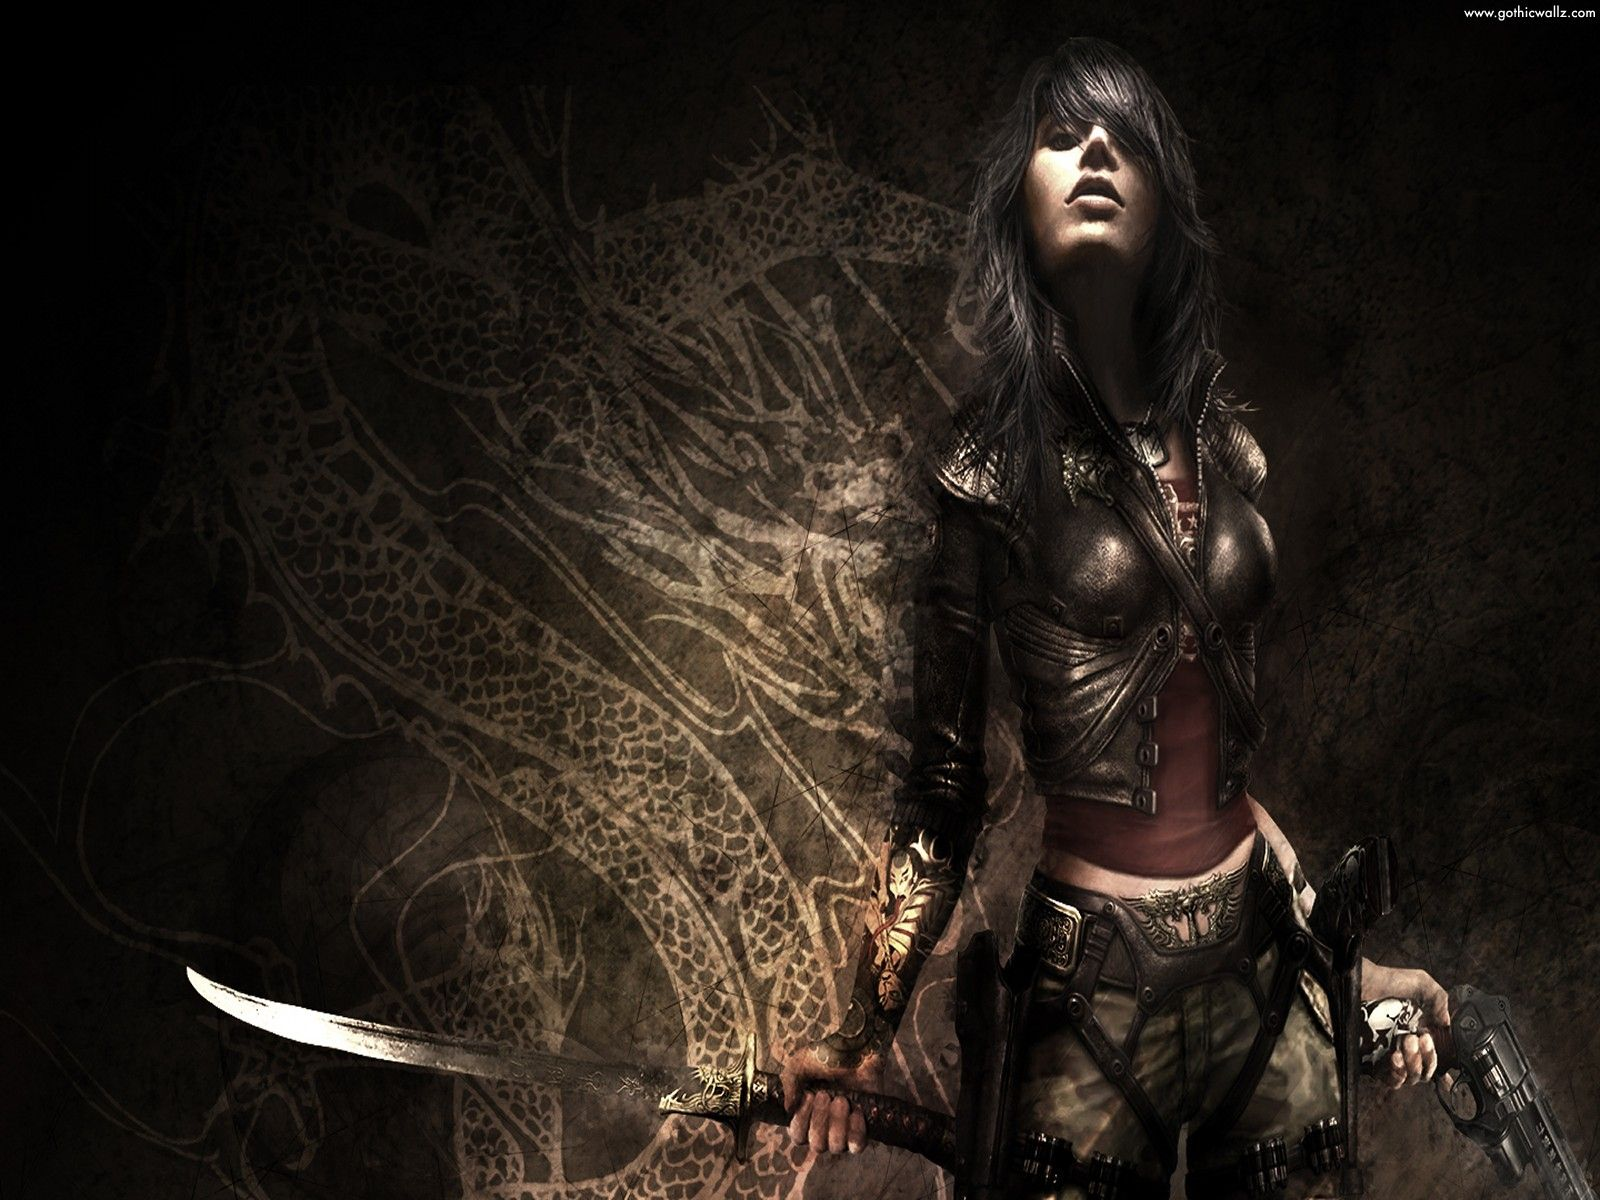 gothic wallpaper fantasy girl | dark gothic wallpaper download